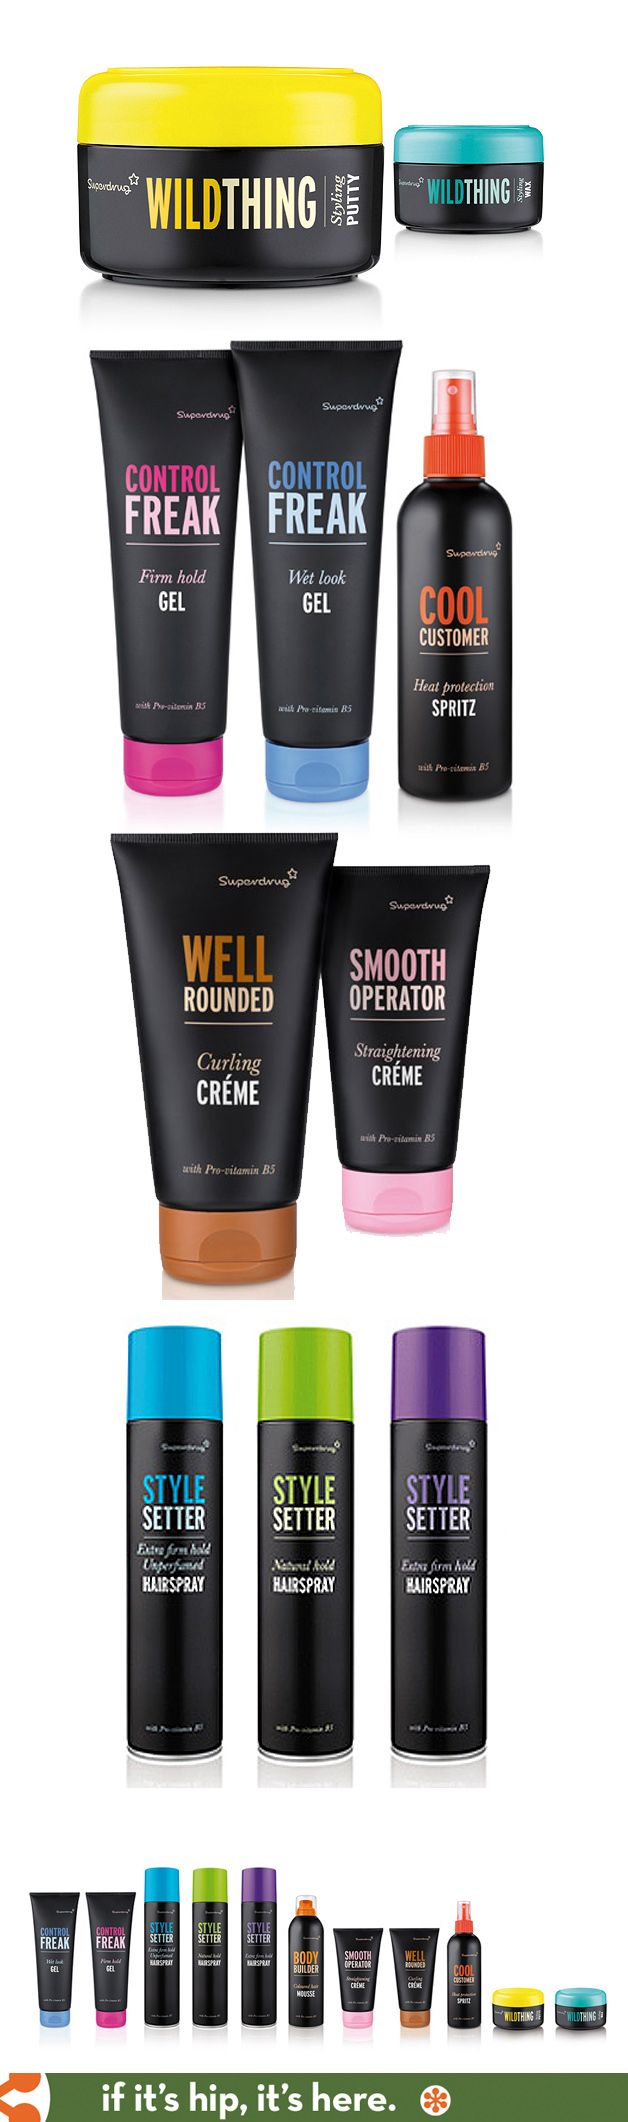 Clean and colorful packaging for Superdrug's own line of Hair Care by Biles, Inc.